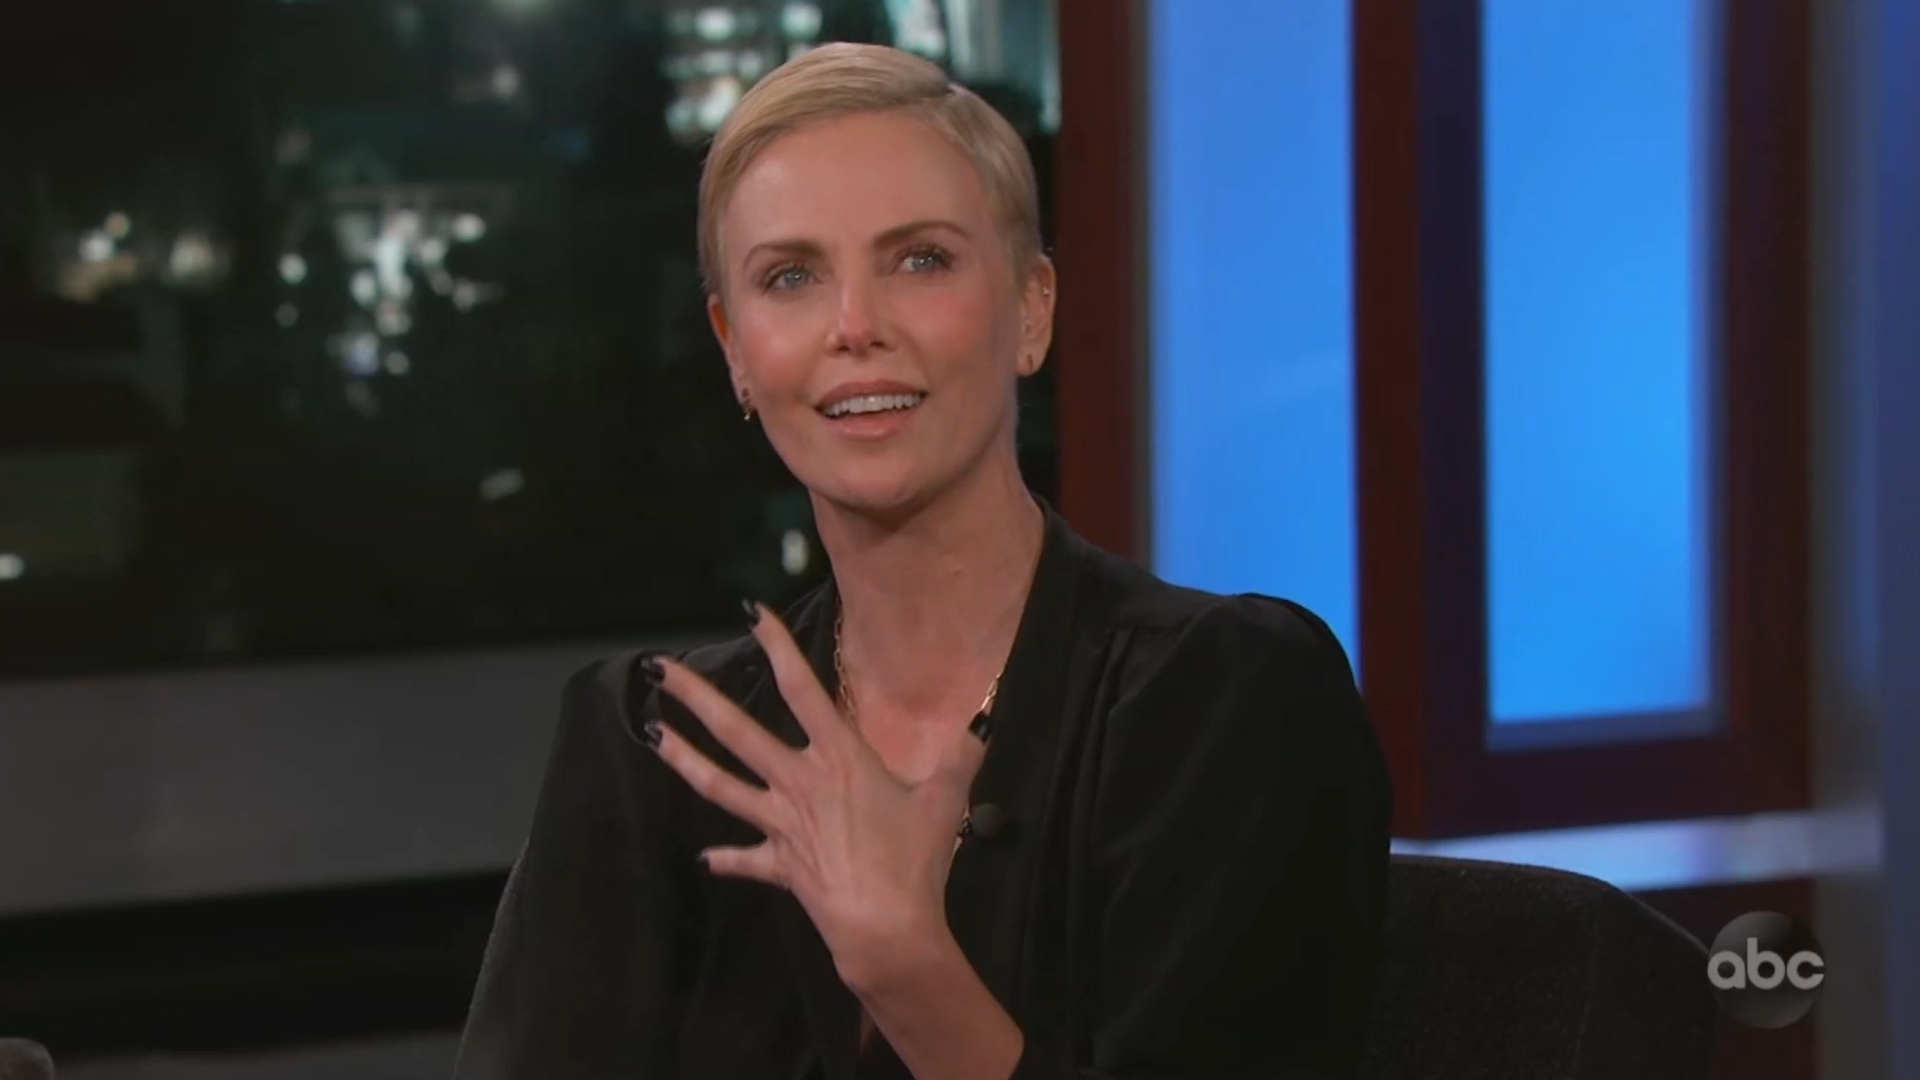 Charlize Theron brought to tears while describing her 'worst date ever'